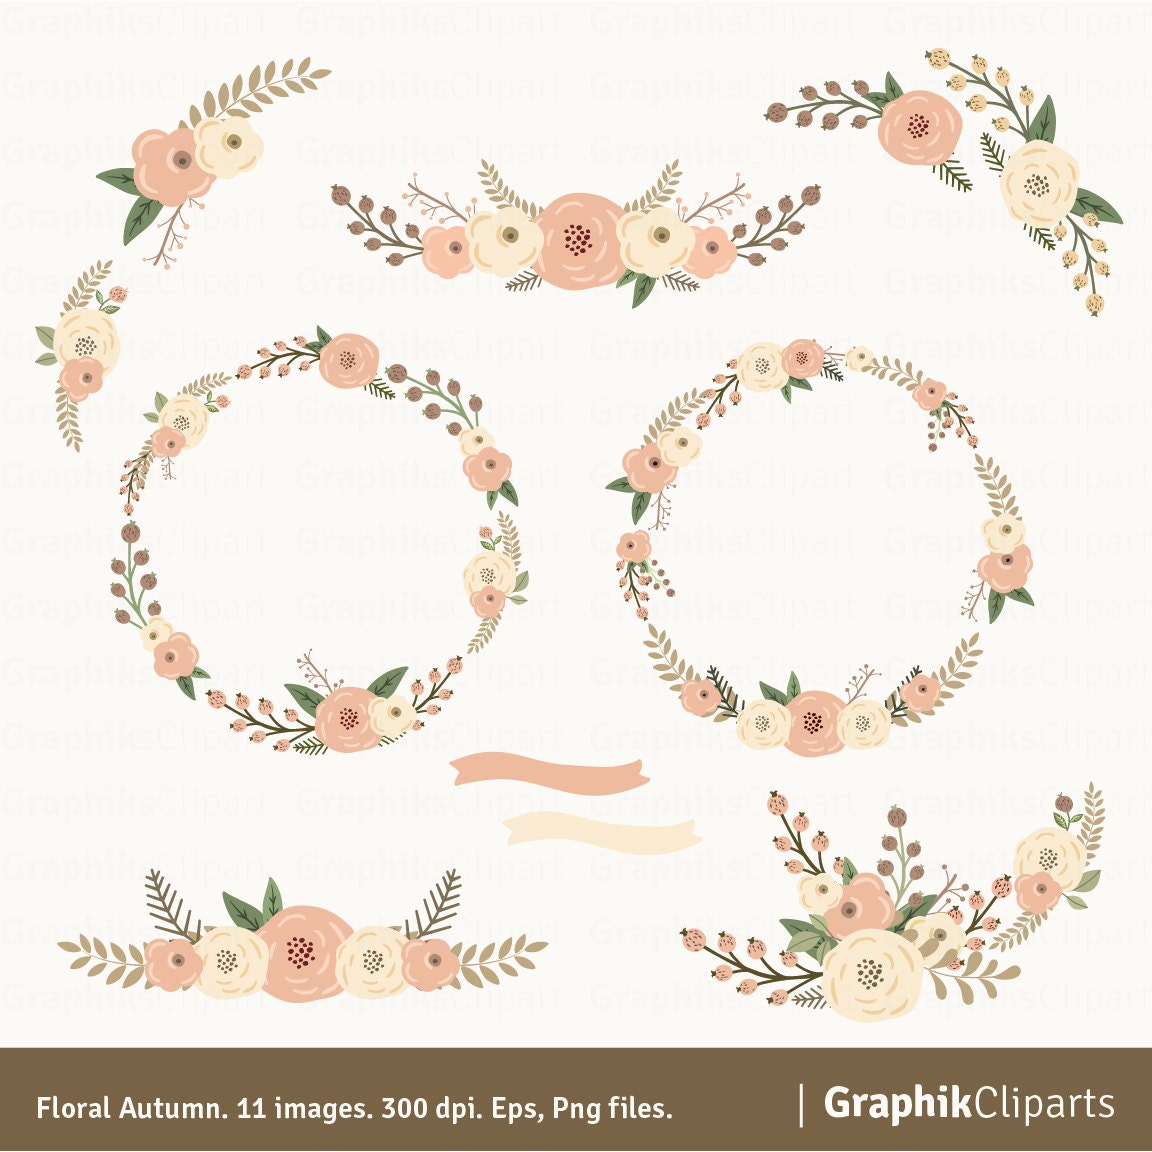 Floral Autumn Wreaths Clipart Rustic Flowers